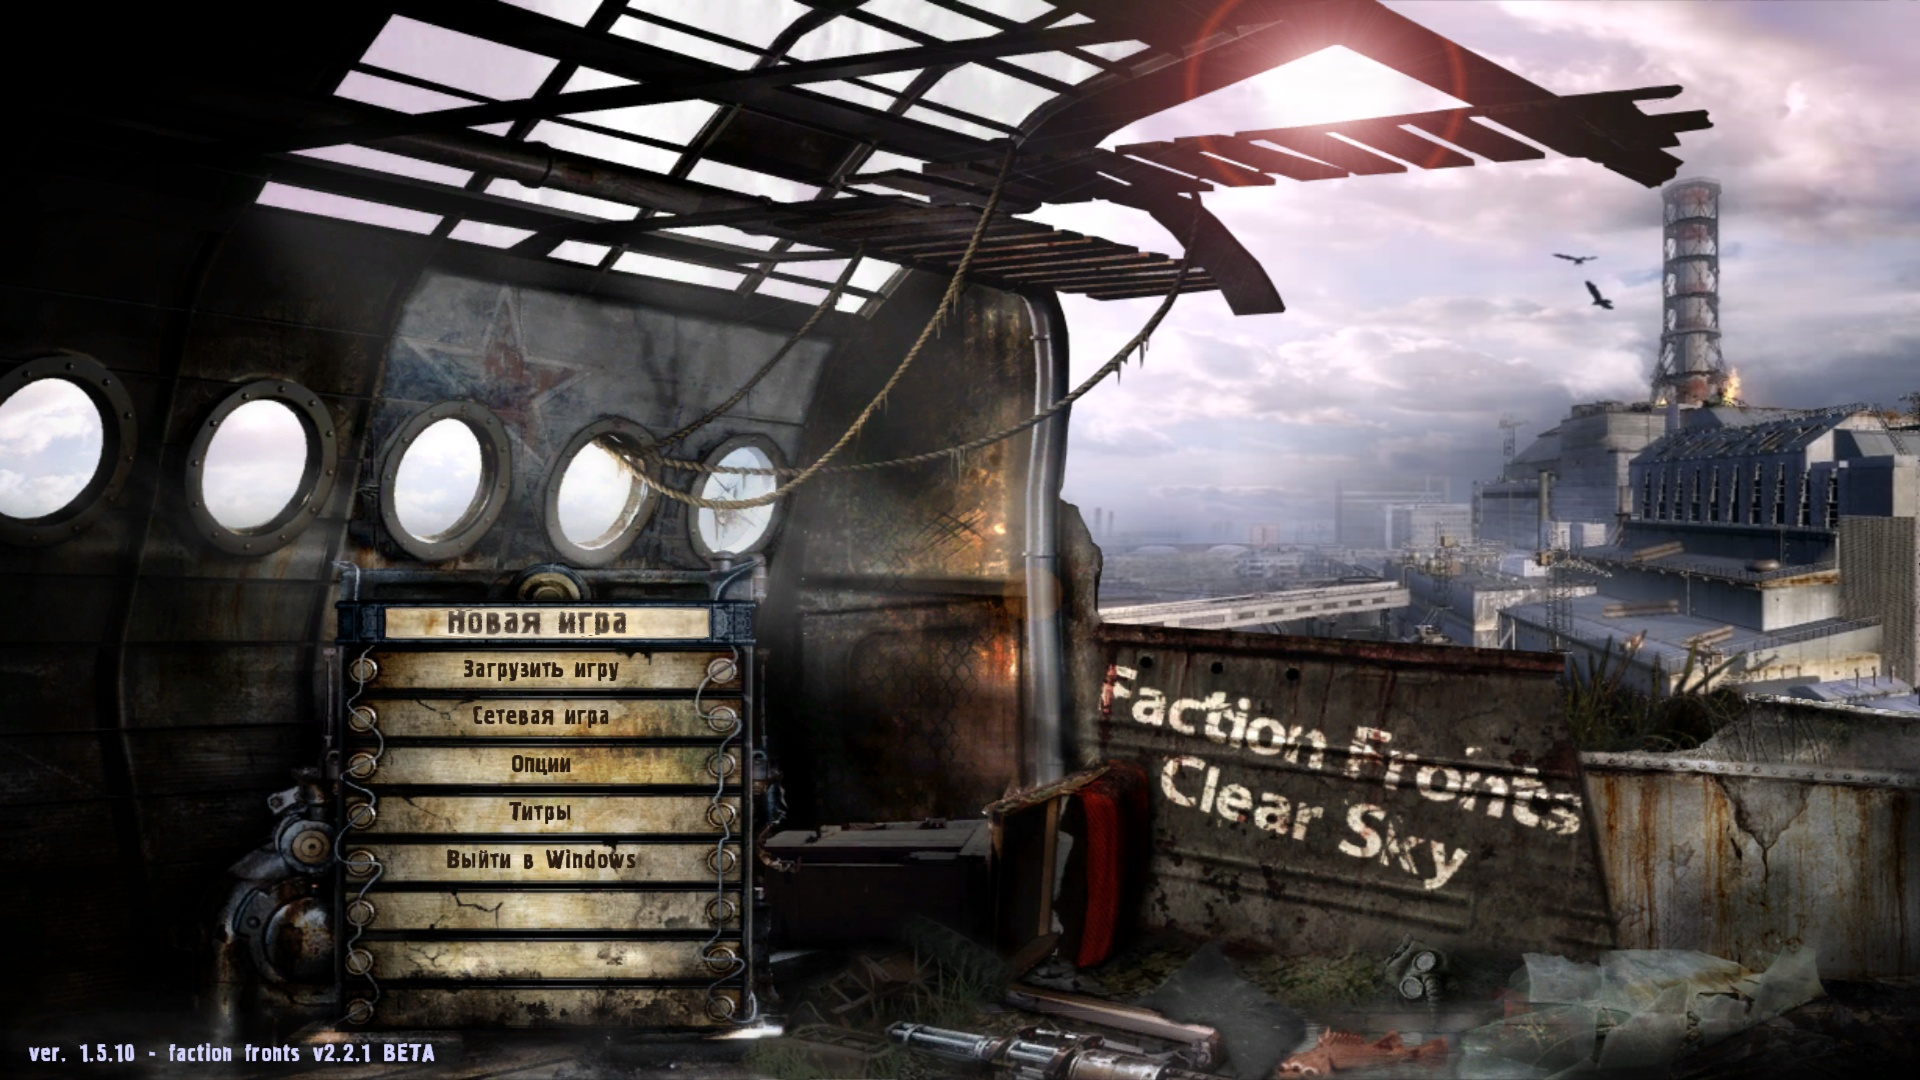 S.T.A.L.K.E.R: Clear Sky - Faction Fronts BETA